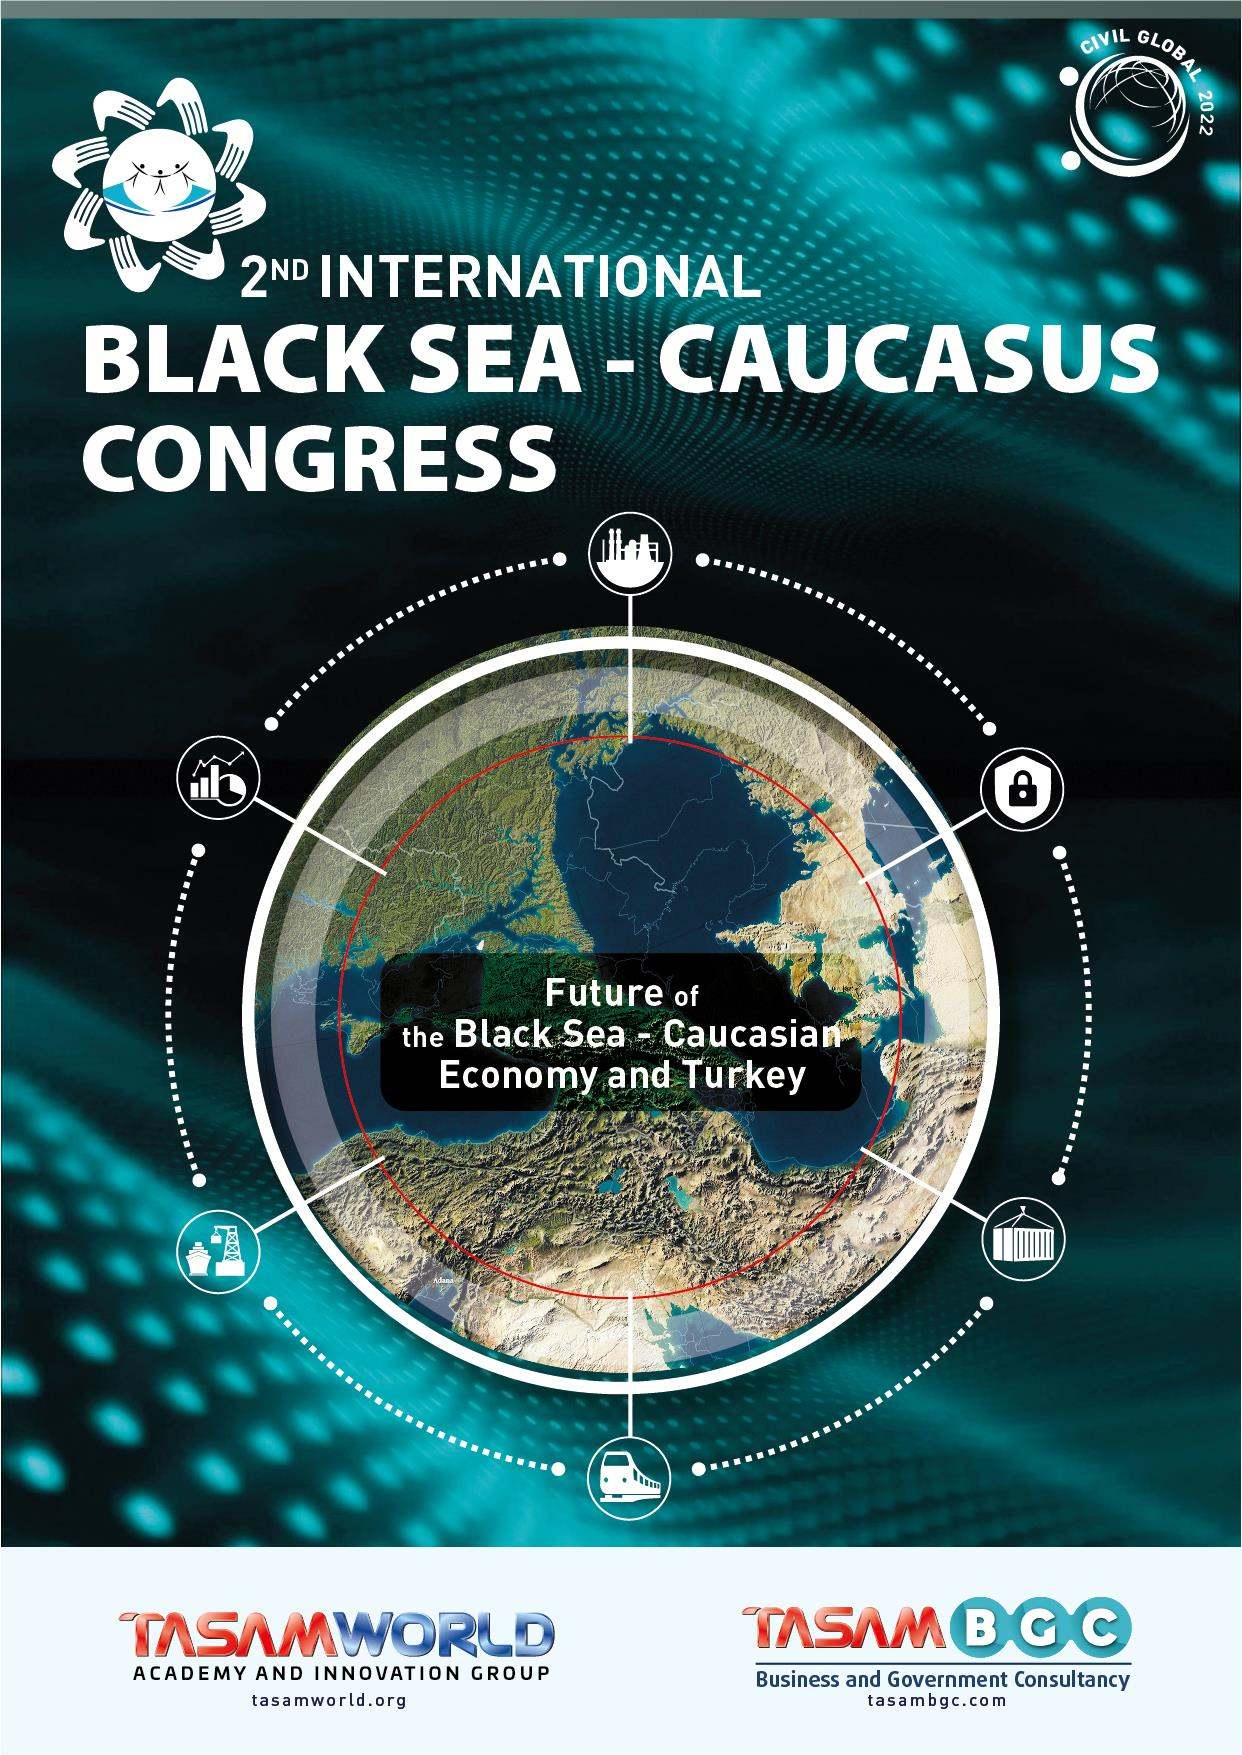 2ND International Black Sea - Caucasian Congress